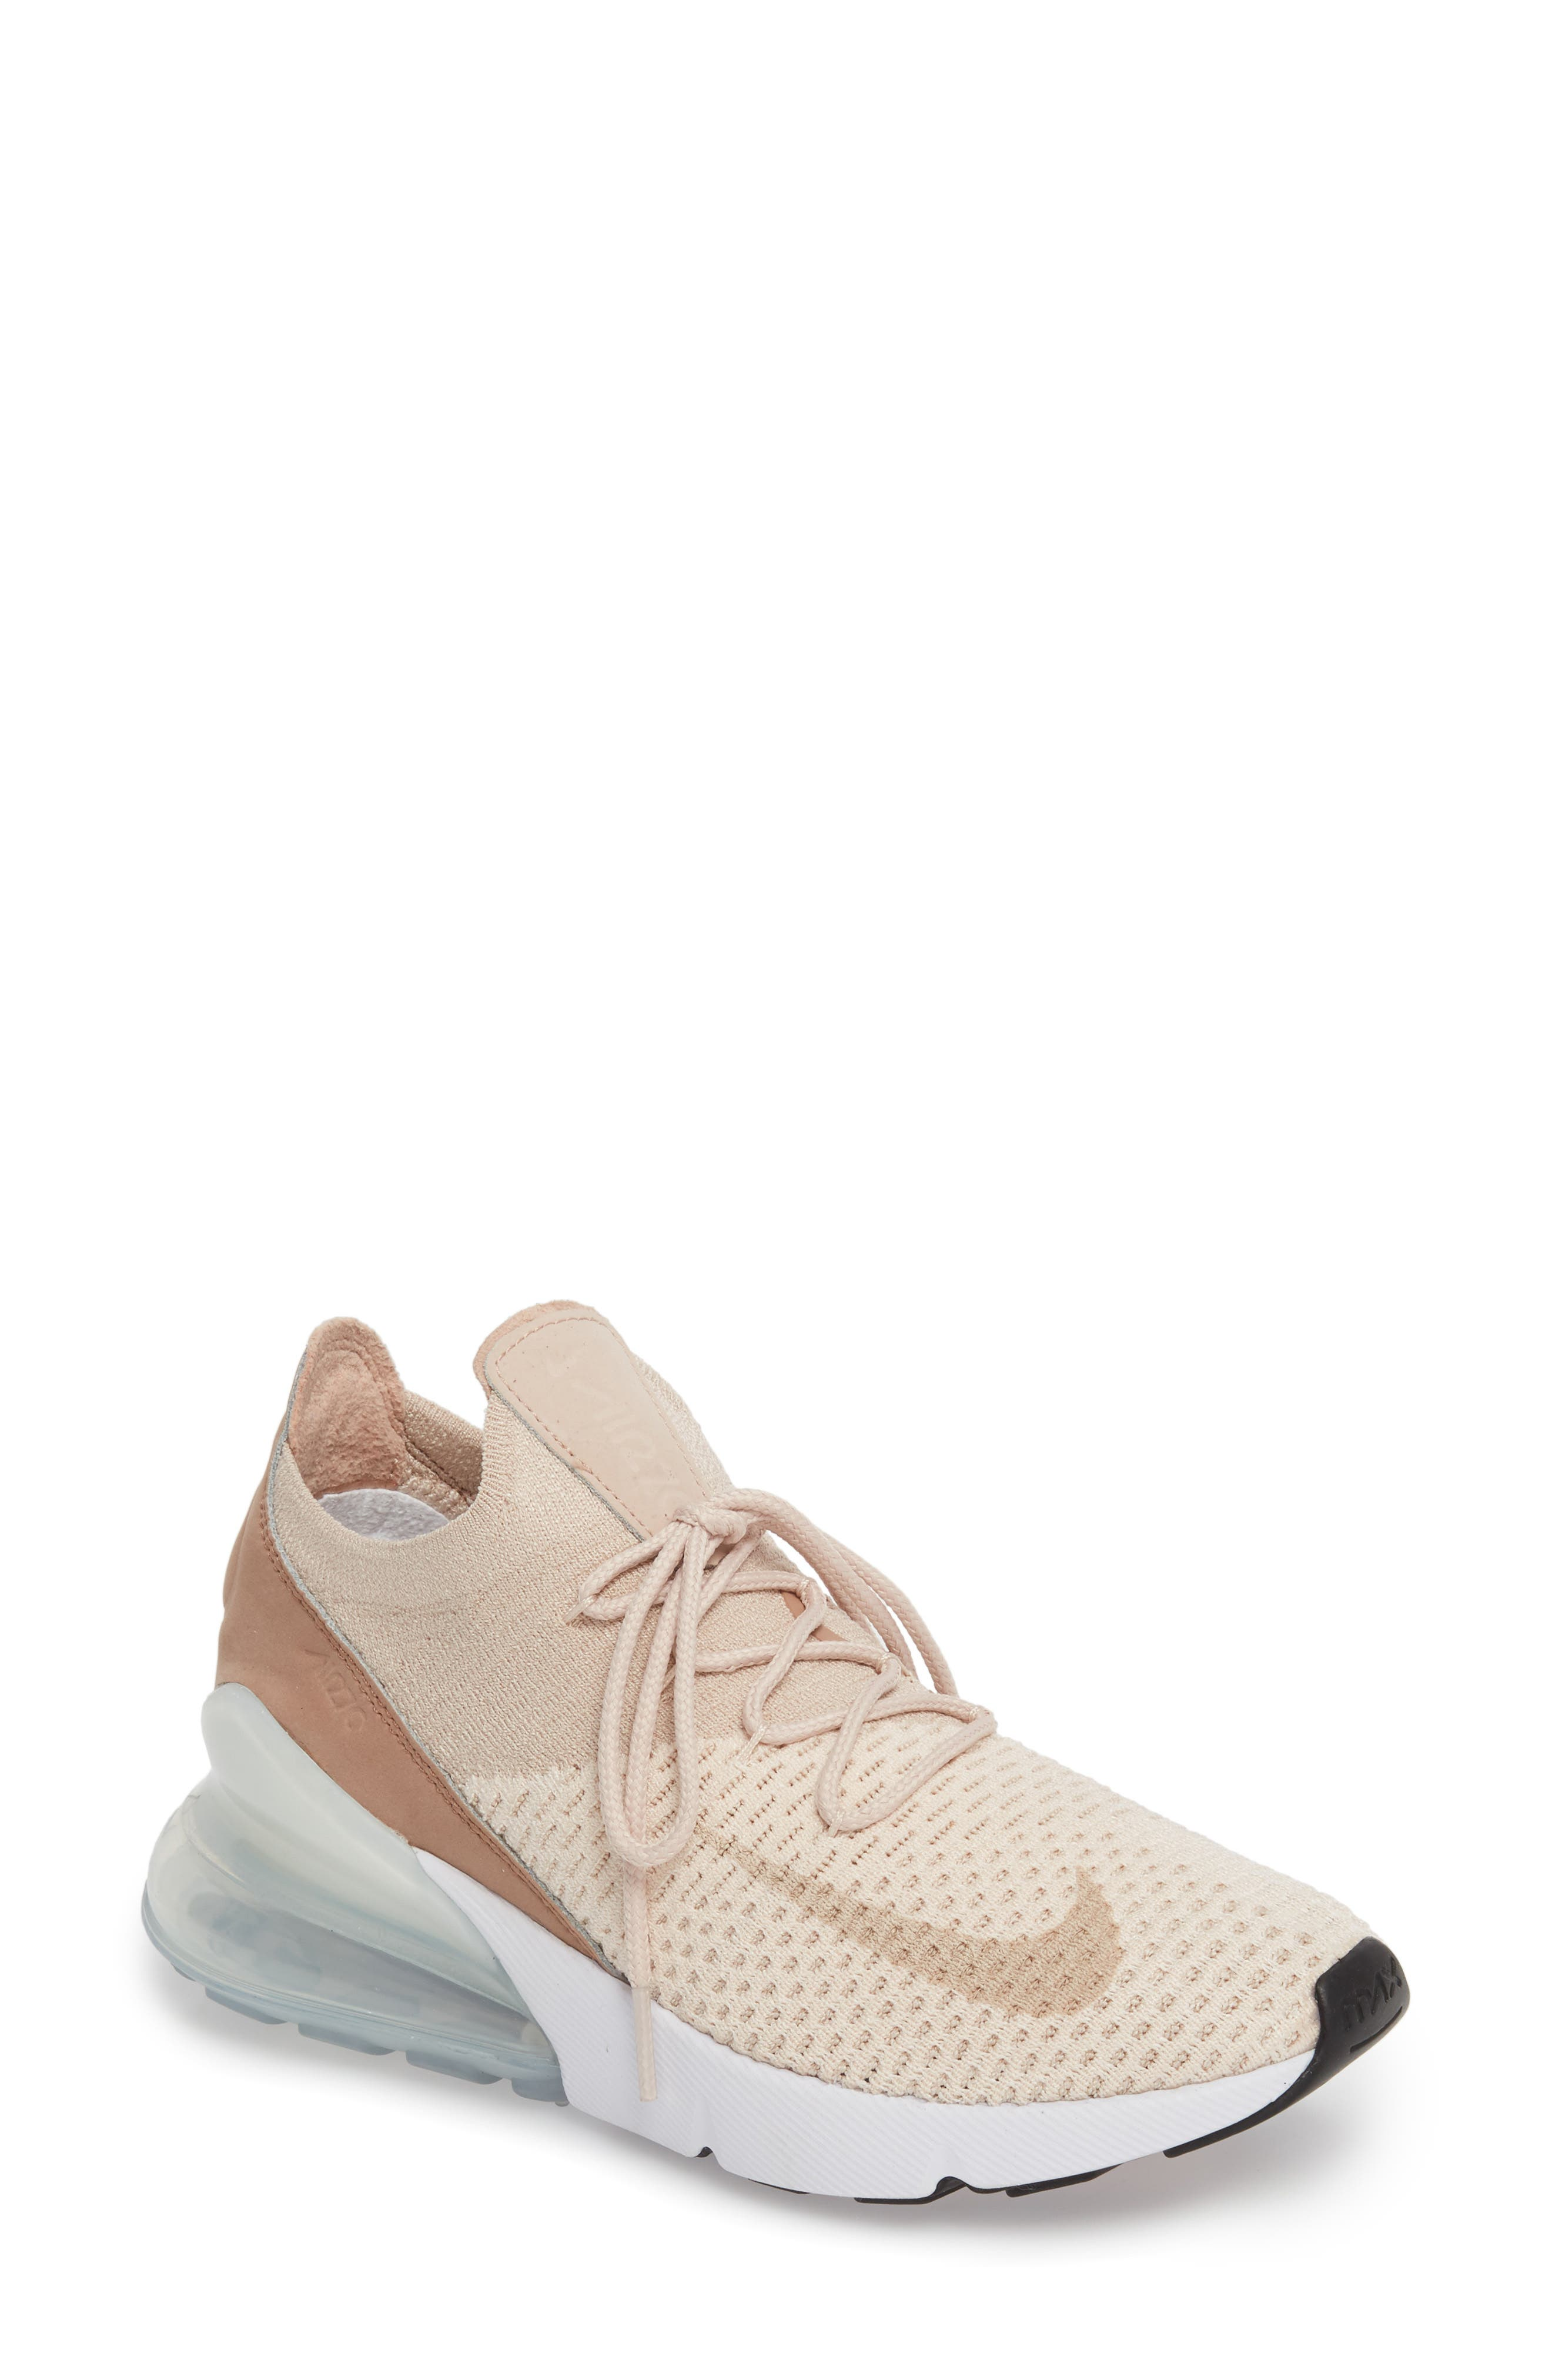 Air Max 270 Flyknit Sneaker,                         Main,                         color, GUAVA ICE/ BEIGE/ DESERT DUST